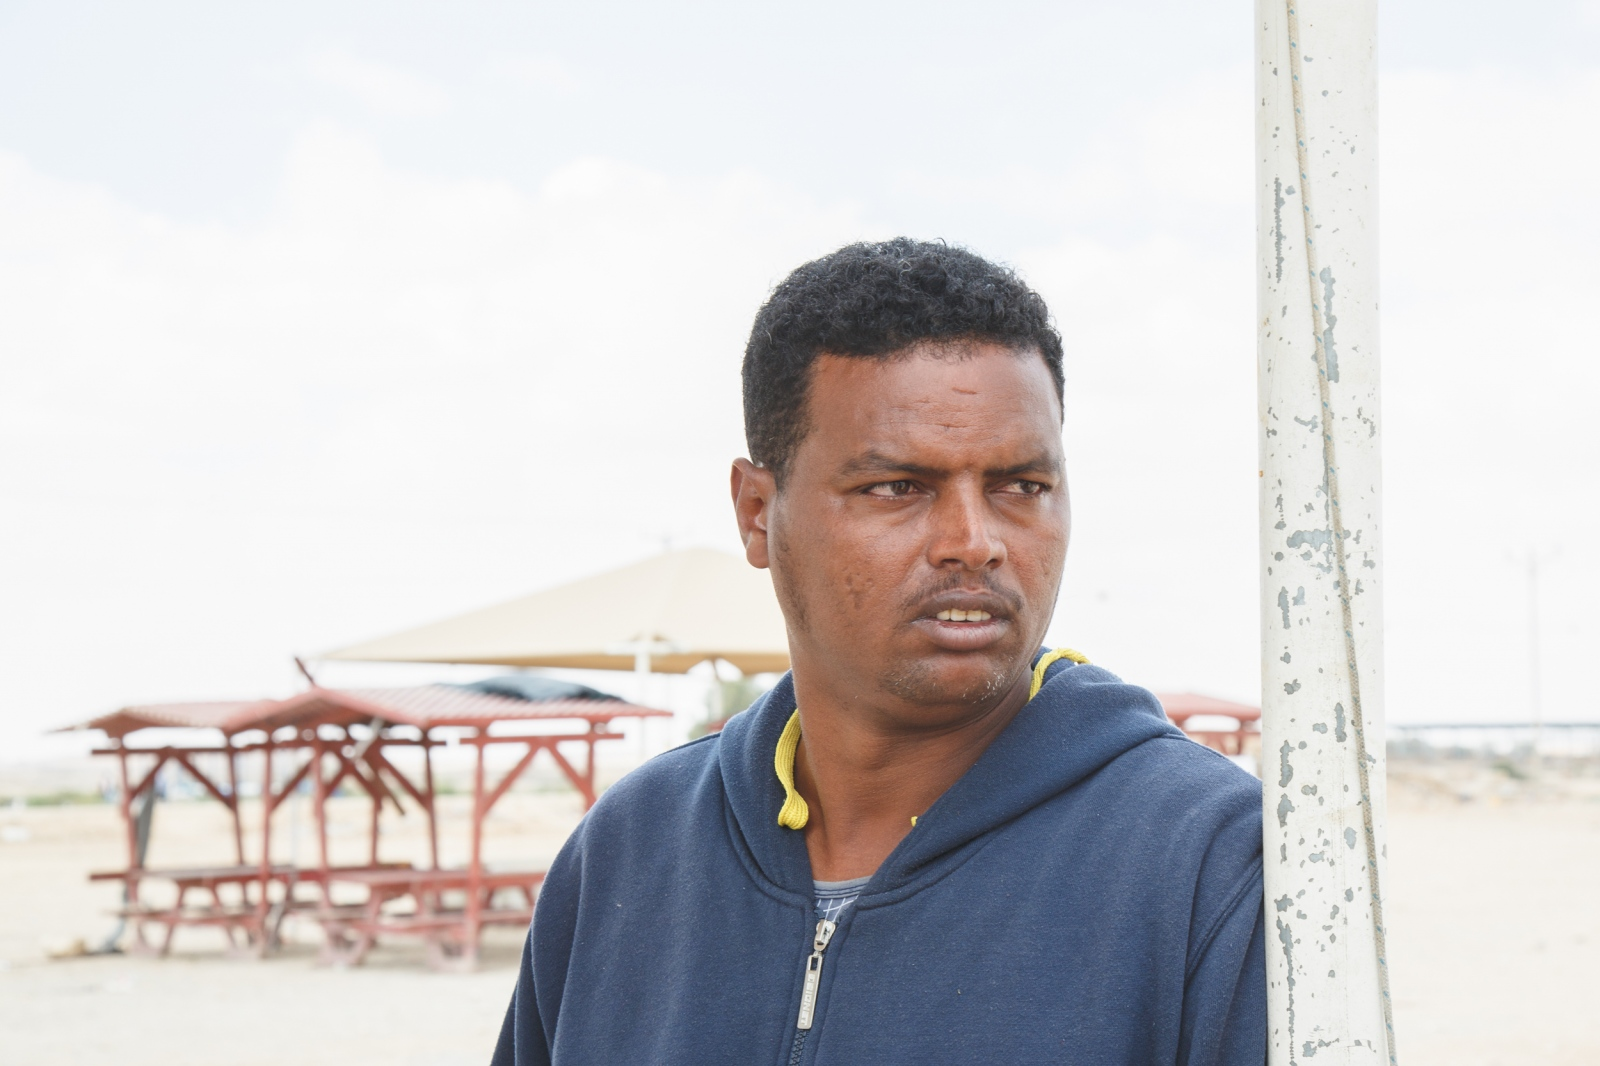 "Mtseamlak Tsfazg, 37 – Eritrea Mtseamlak fled Eritrea for the reason that he was in military service and therefore afraid for his life. Since he could not raise any money for smugglers, he initially stayed in Sudan for ten months. He made it to Israel in 2012 but first came to Saharonim prison in the Negev desert for one and a half years. He then worked near Gaza and now has been in Holot since five months. His wife and children are still in Eritrea. Mtseamlak has not been able to cope well with his escape and the time in Israeli prison: ""I am calling for help – and I don't know why it is taking so long."""